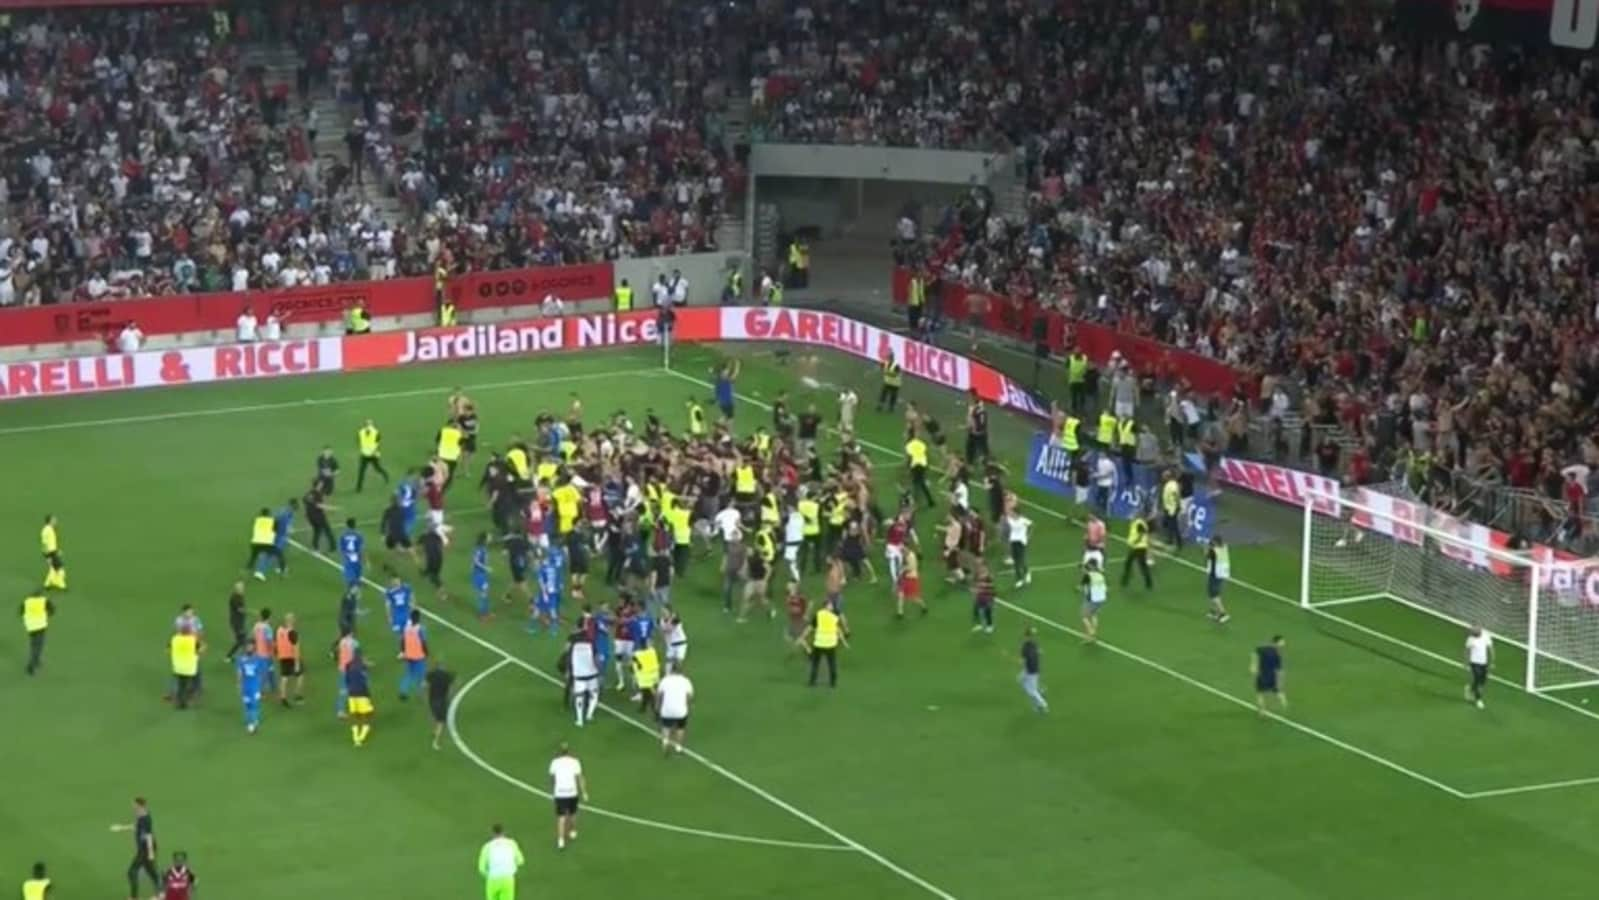 French League's Nice-Marseille Game was Abandoned after Violence: School Megamart 2021